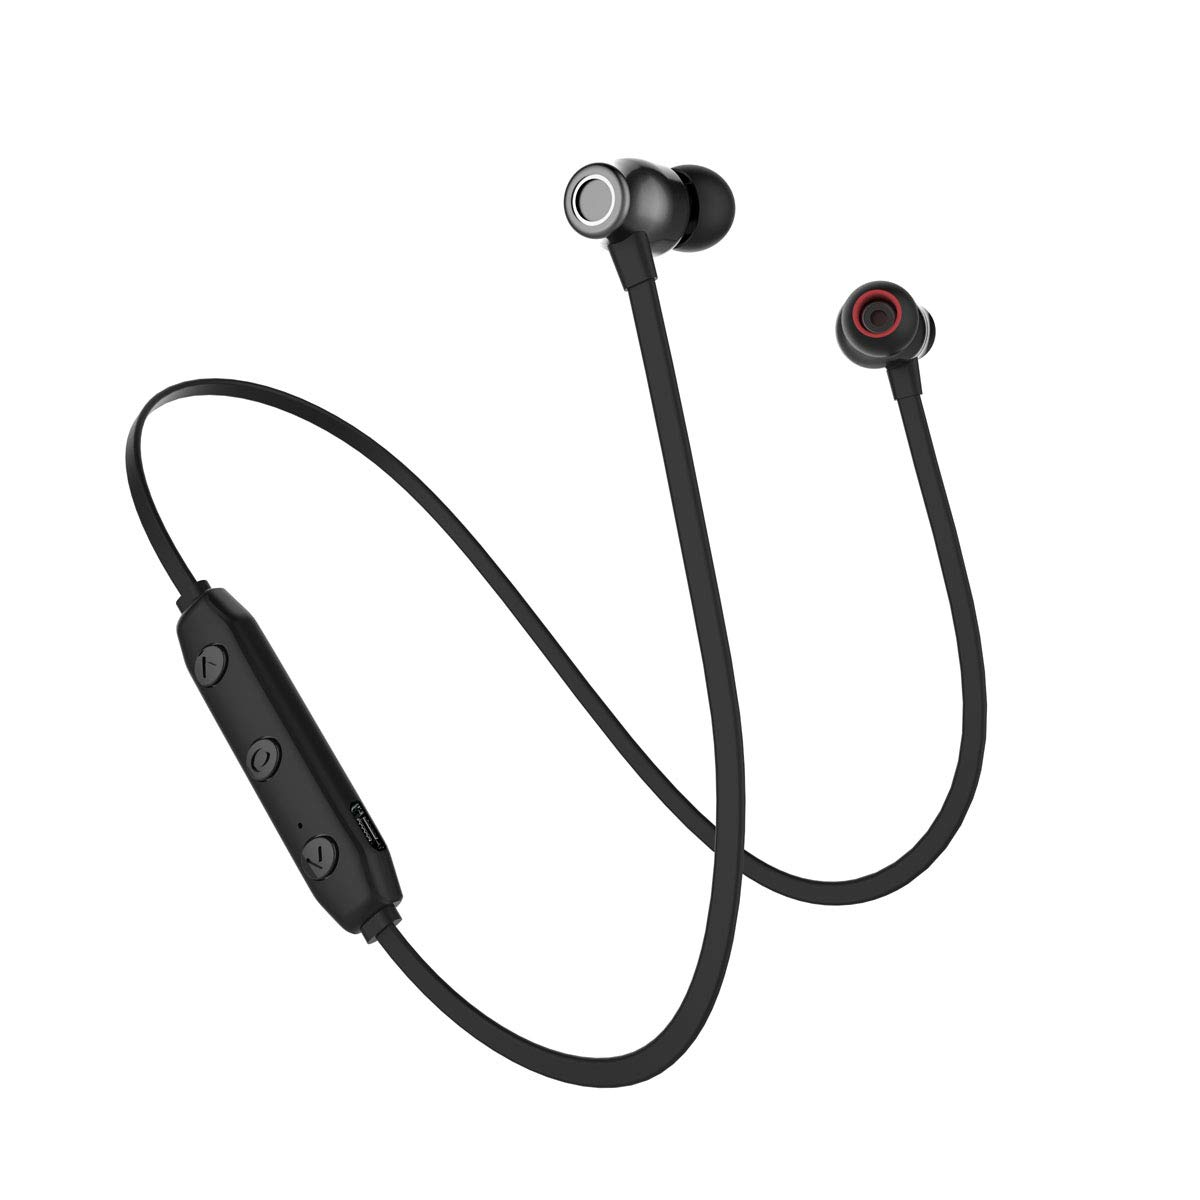 218e4c22163 Wireless Headphones Bass Earbuds with Mic Bluetooth V5.0 Noise Cancelling  in-Ear Sweatproof Earphones for Mens Sports Headsets Lightweight Portable  Gym ...